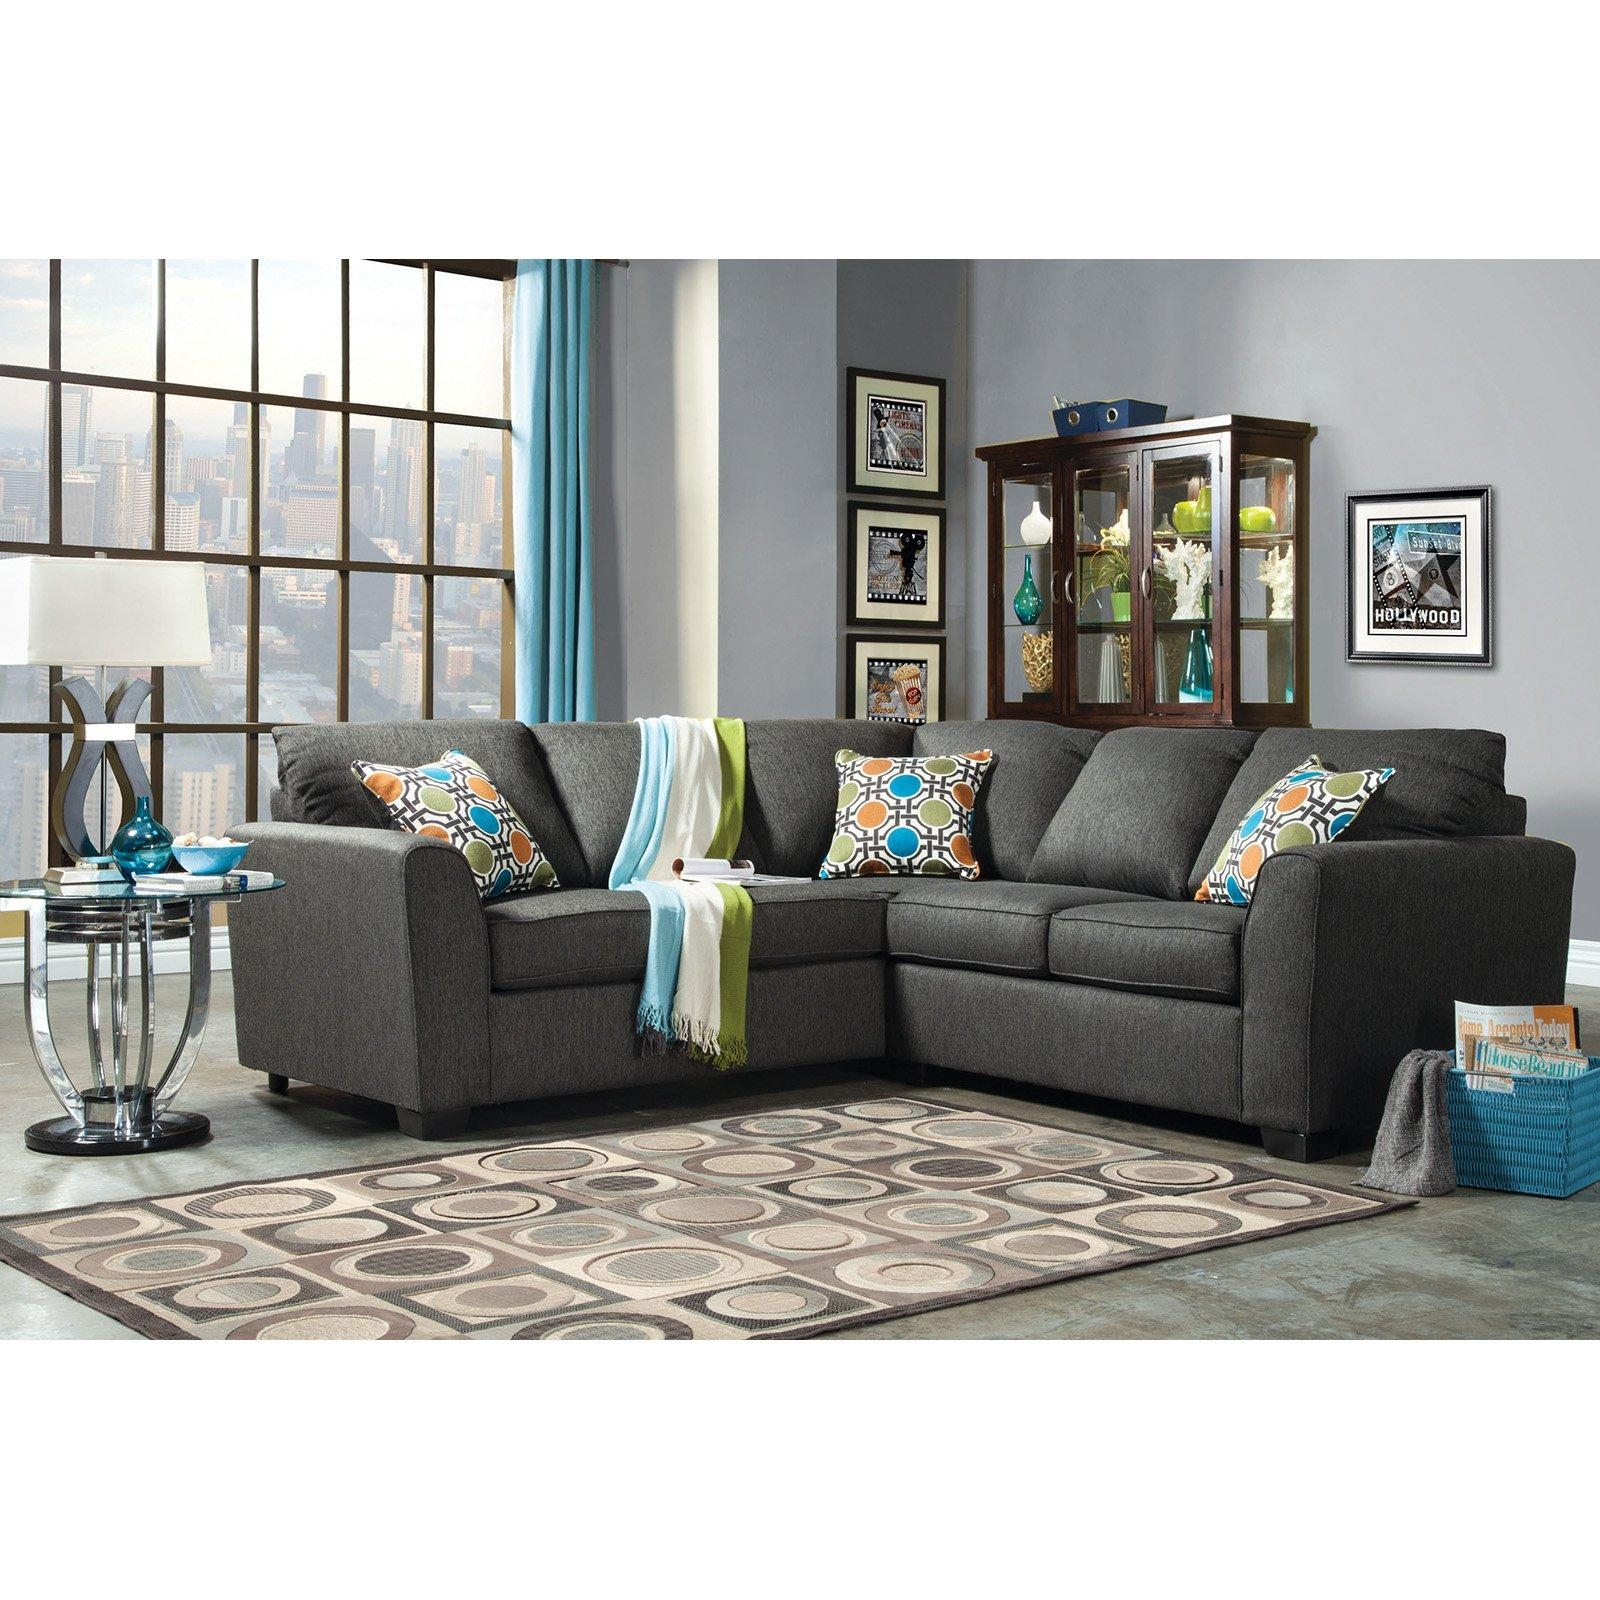 Sofas : Fabulous Modern Leather Sectional Best Sectional Sofa Two In Small 2 Piece Sectional Sofas (View 11 of 23)